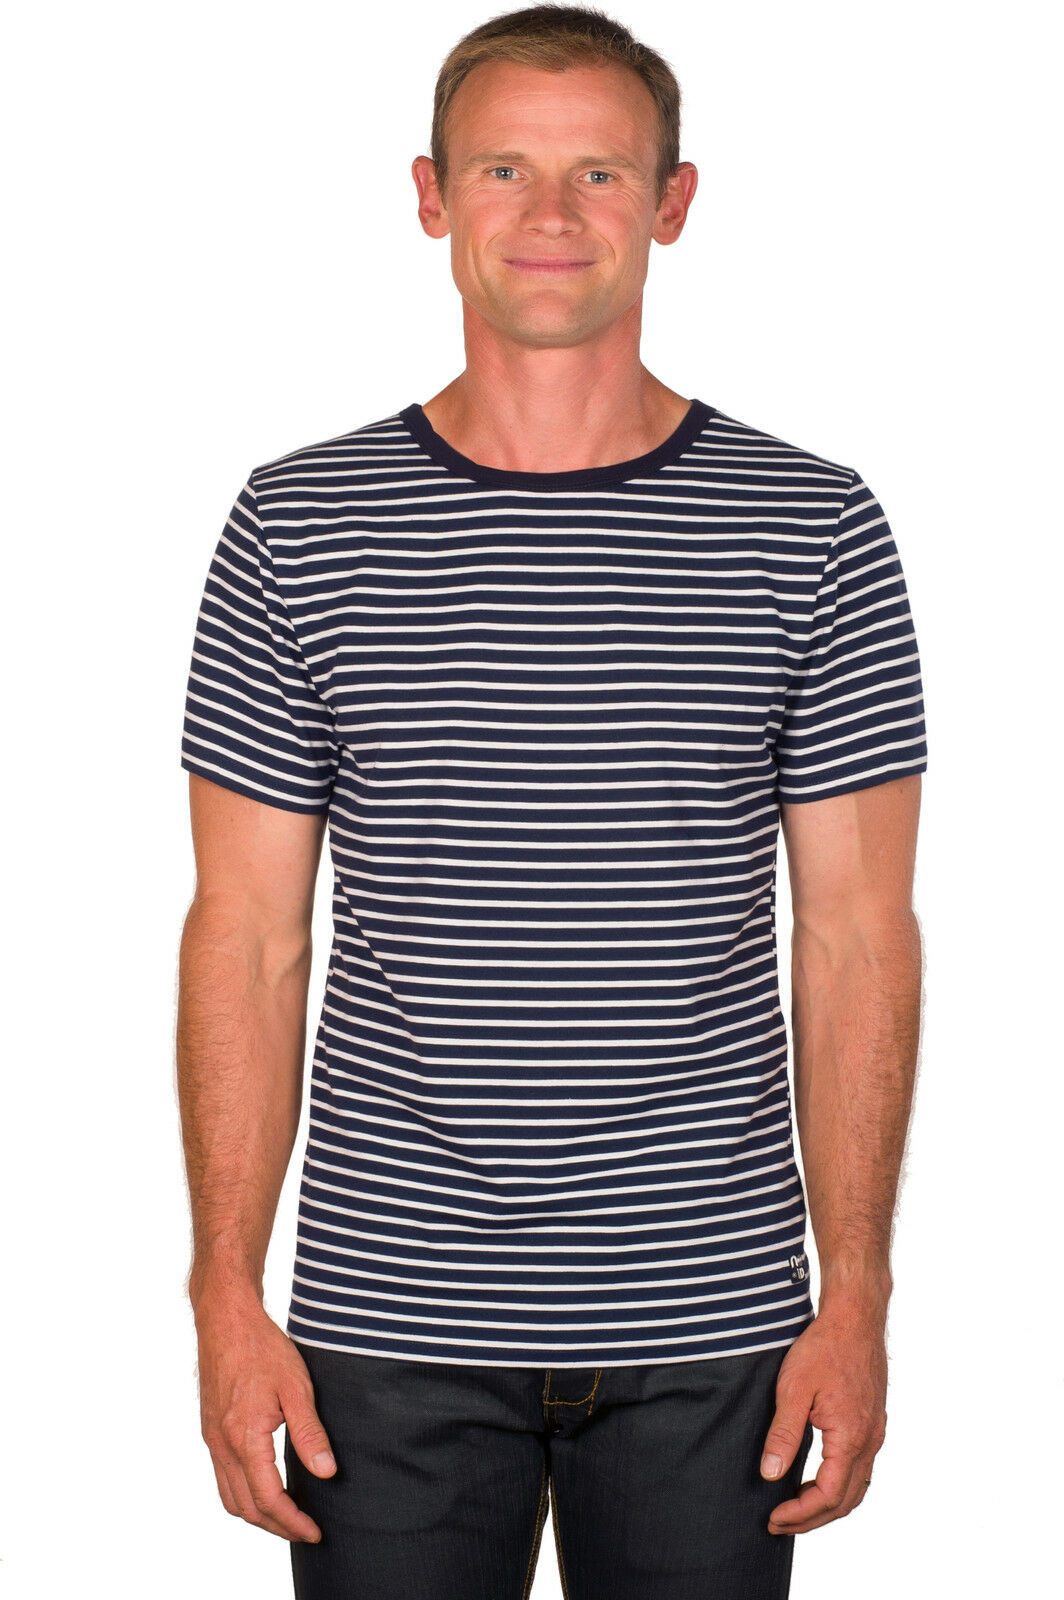 Ugholin Men's bluee and White Breton Striped Short Sleeve Cotton T-Shirt